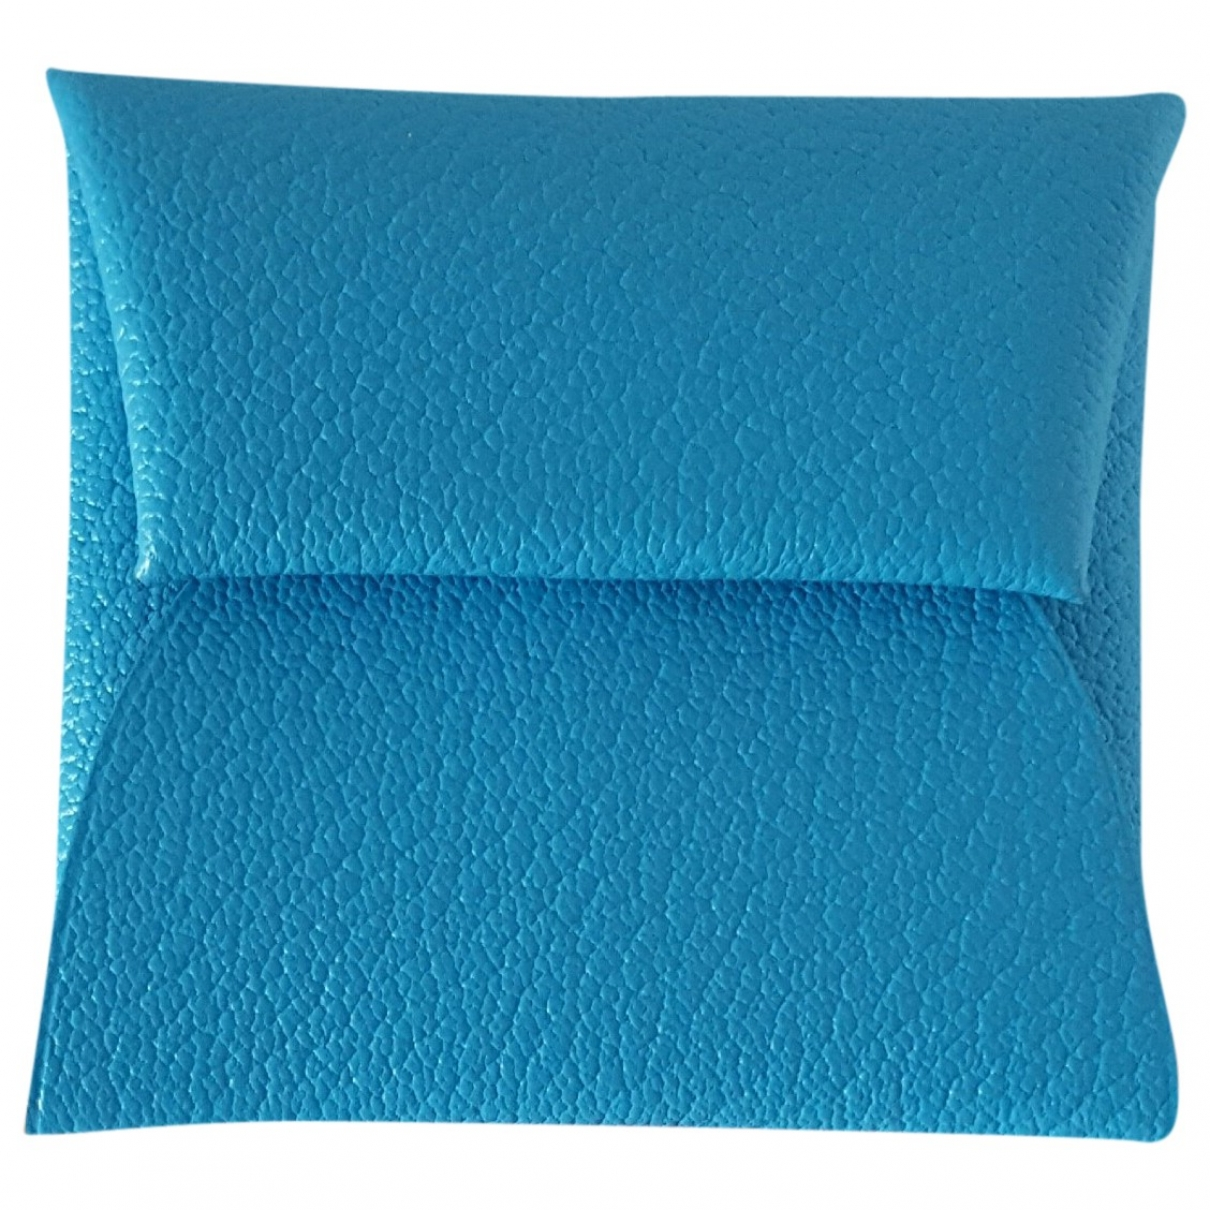 Hermès Bastia Turquoise Leather Purses, wallet & cases for Women \N